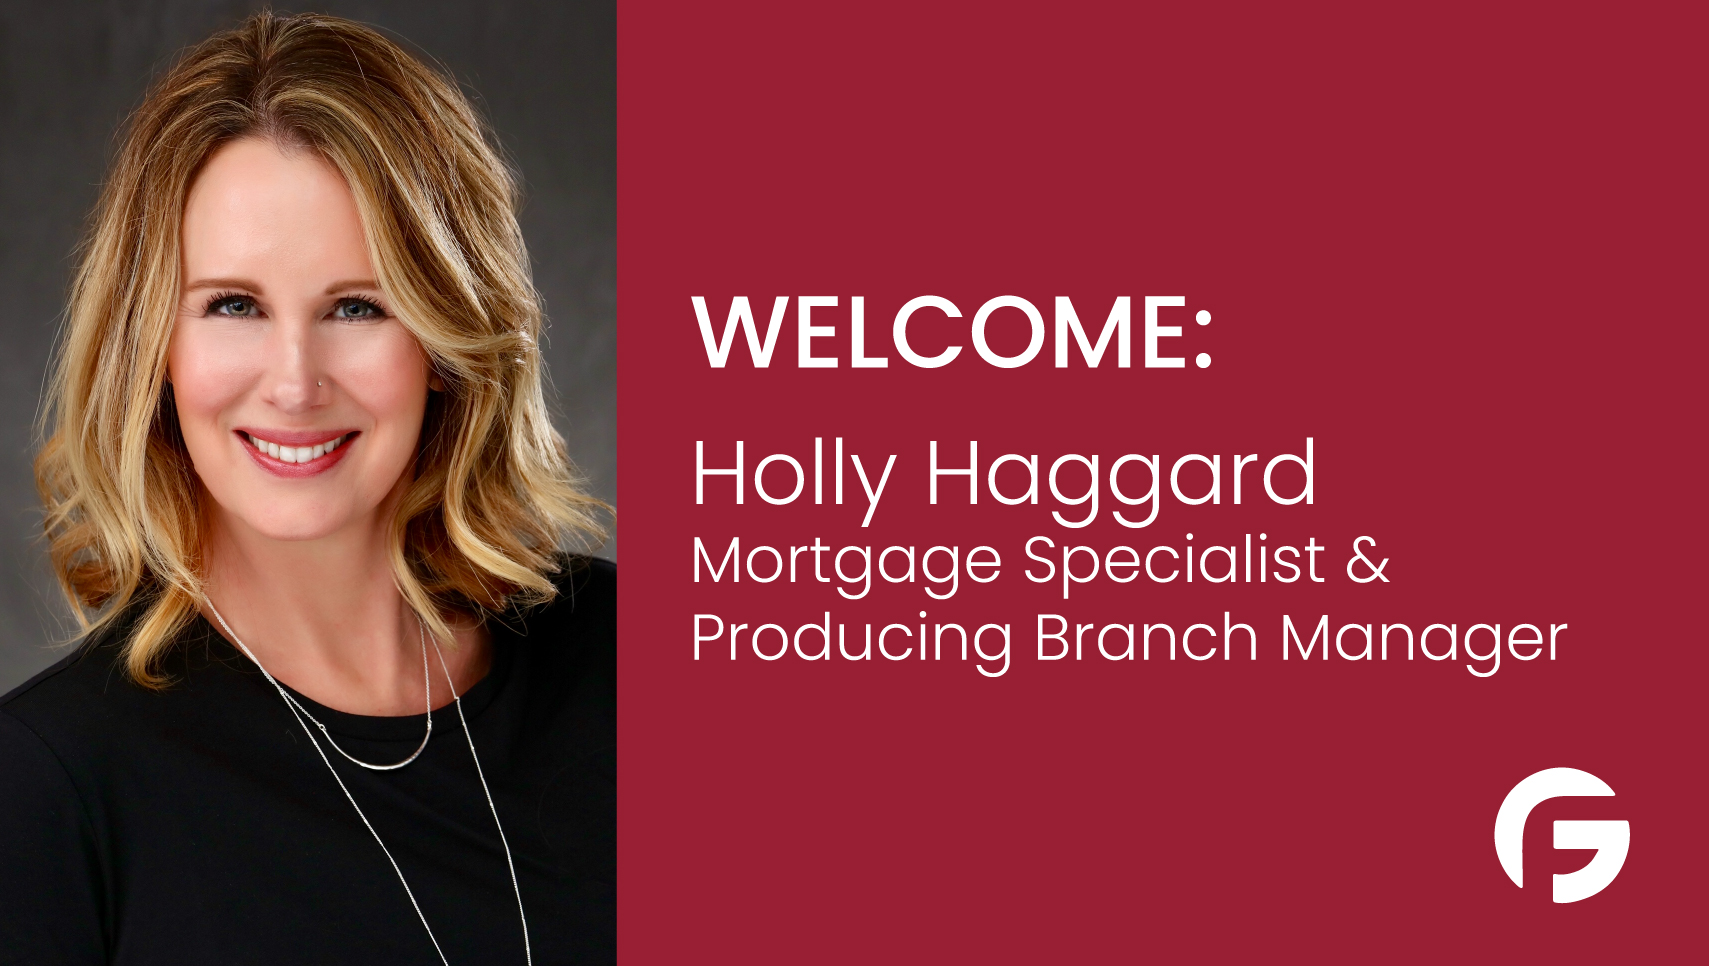 Holly Haggard, Producing Branch Manager and Mortgage Specialist  serving Texas (TX)